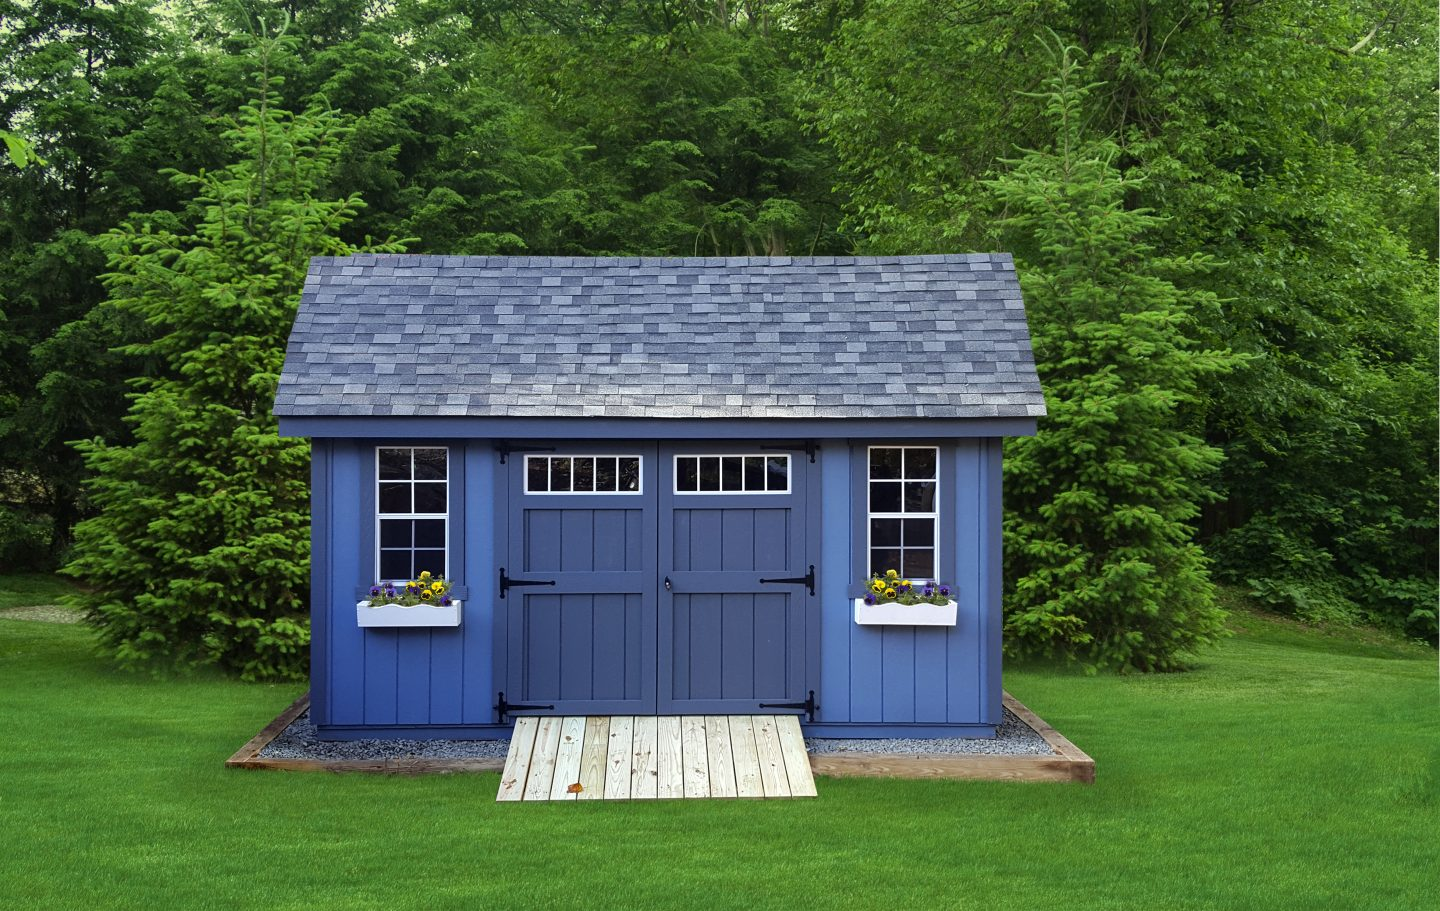 Large Blue Storage Shed with Large Doors Flower Boxes and Transom Windows